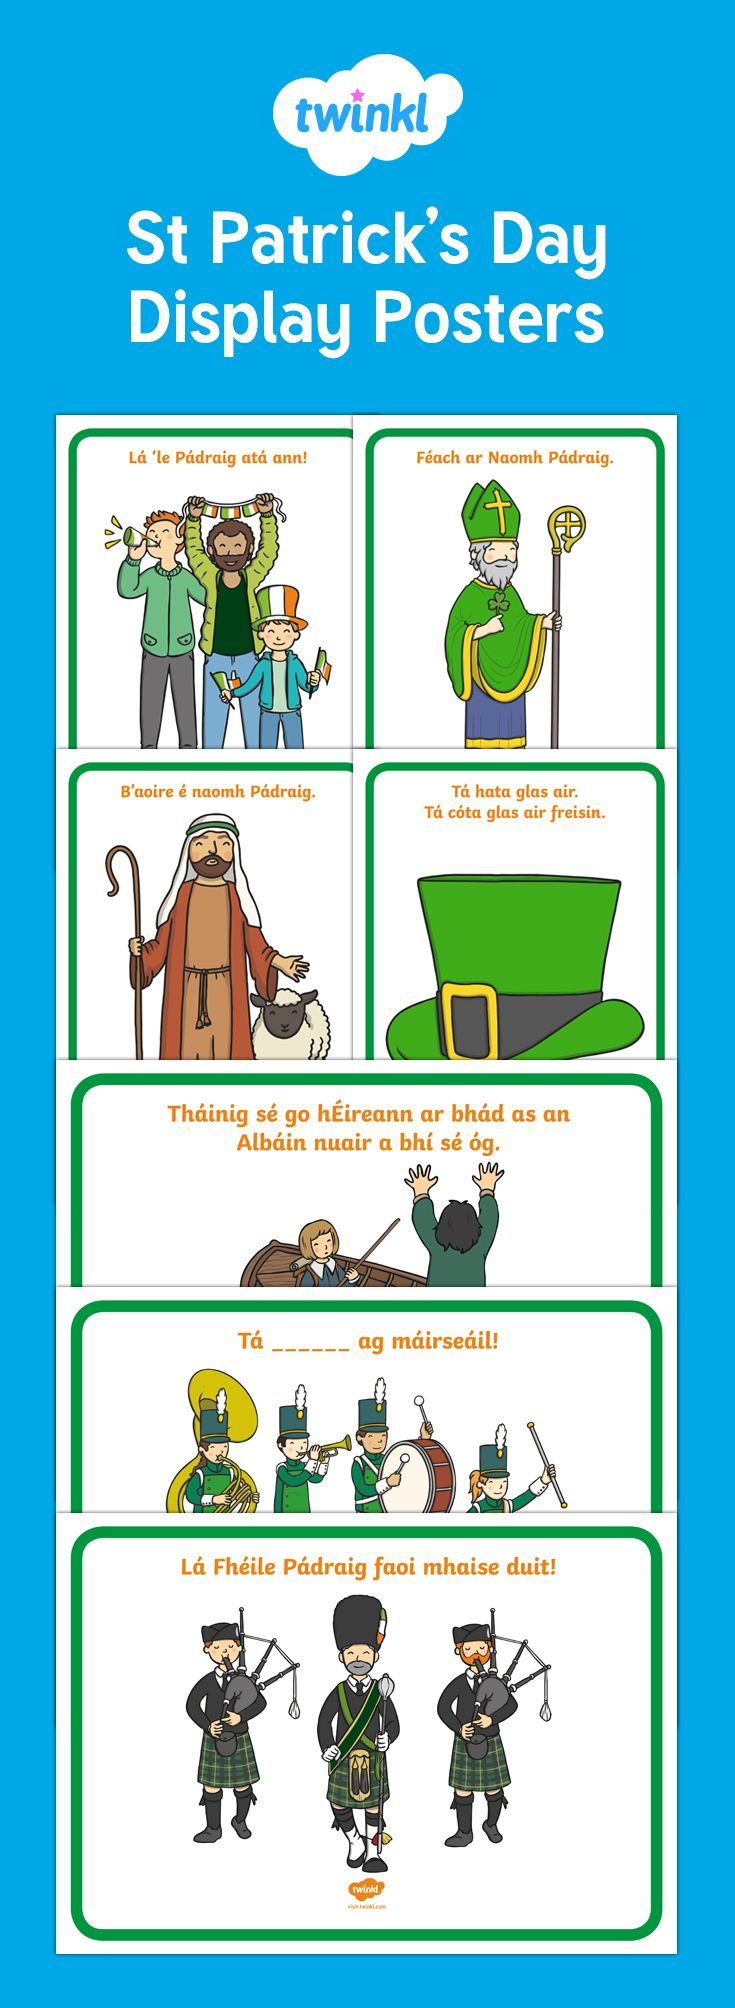 Saint Patrick's Day Display Posters Gaeilge/Irish